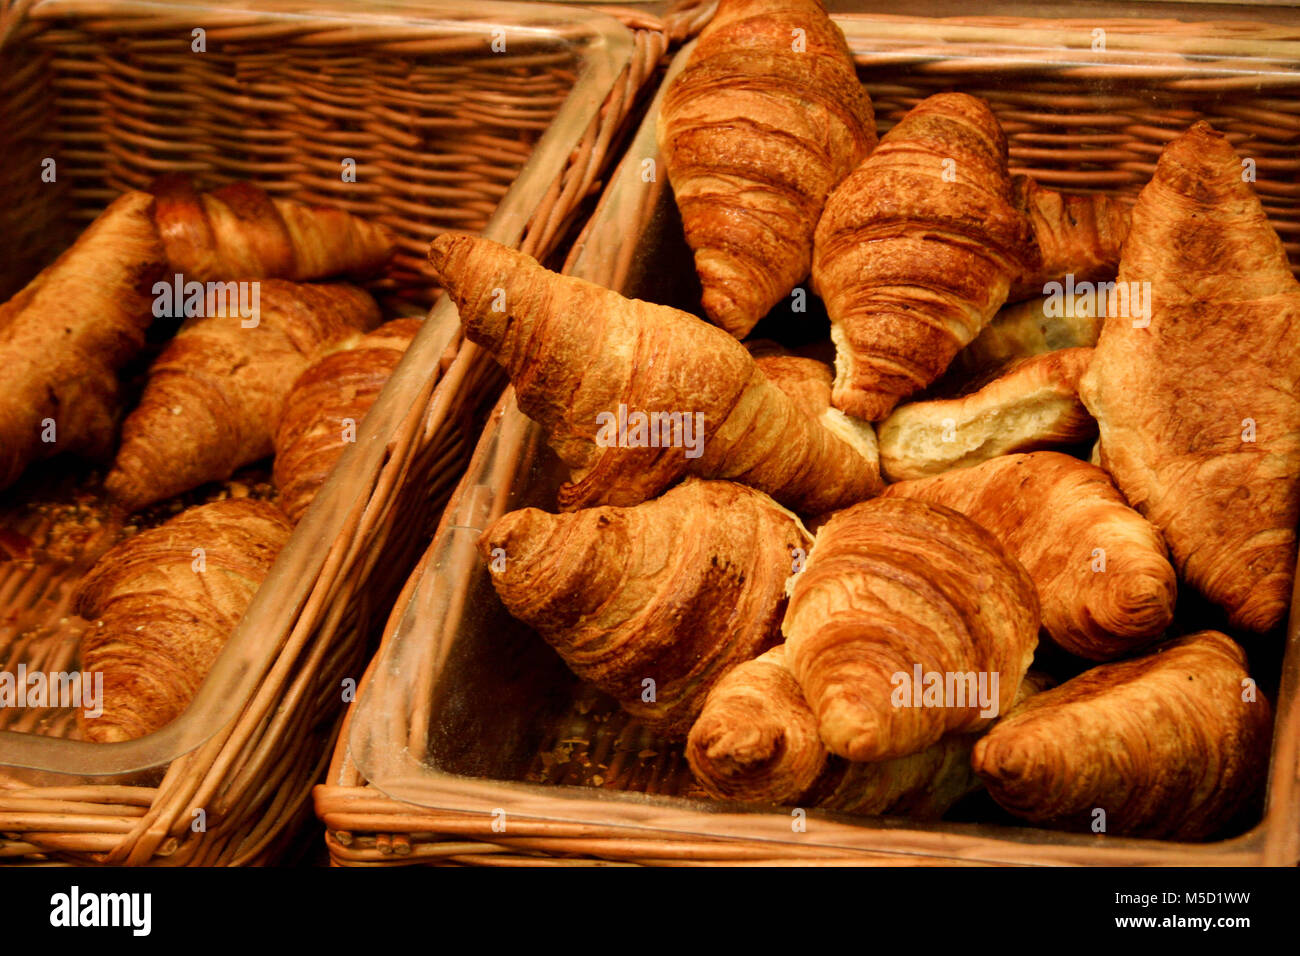 Puffy golden brown Croissants in sales wicker baskets, freshly baked, with natural lighting - Stock Image